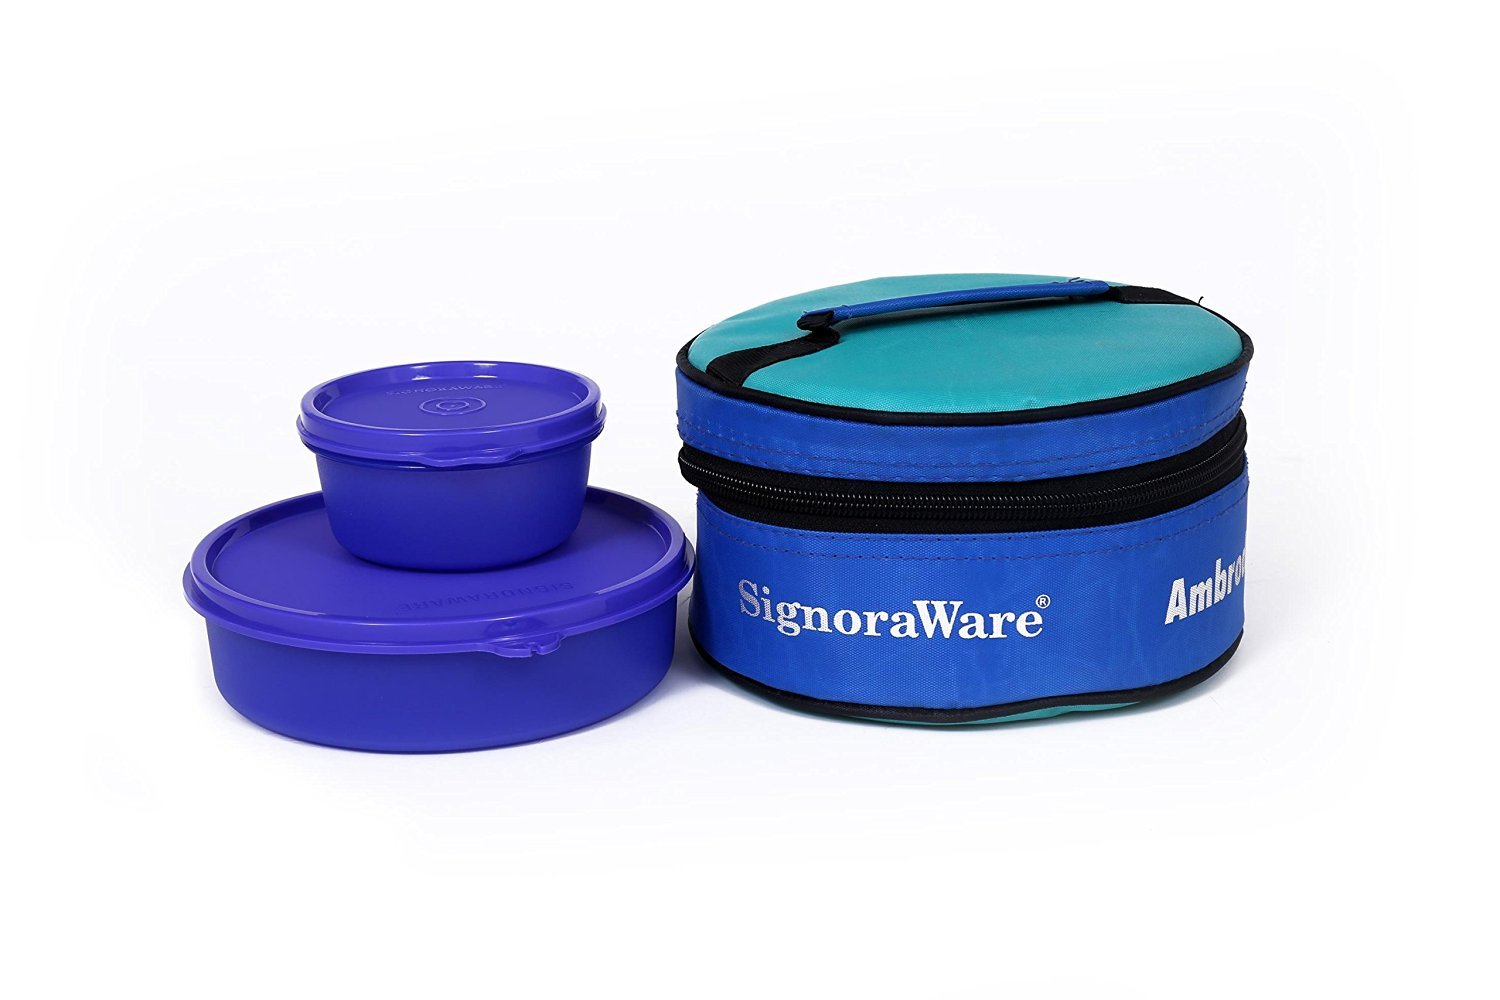 Signoraware Small New Classic Plastic Lunch Box with Bag Small, Deep Violet